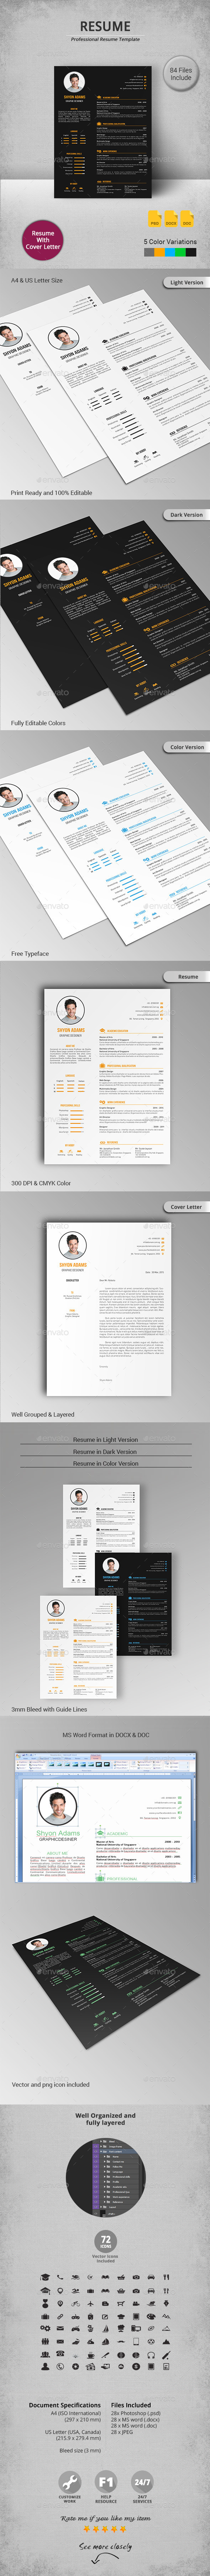 GraphicRiver Resume 11442224